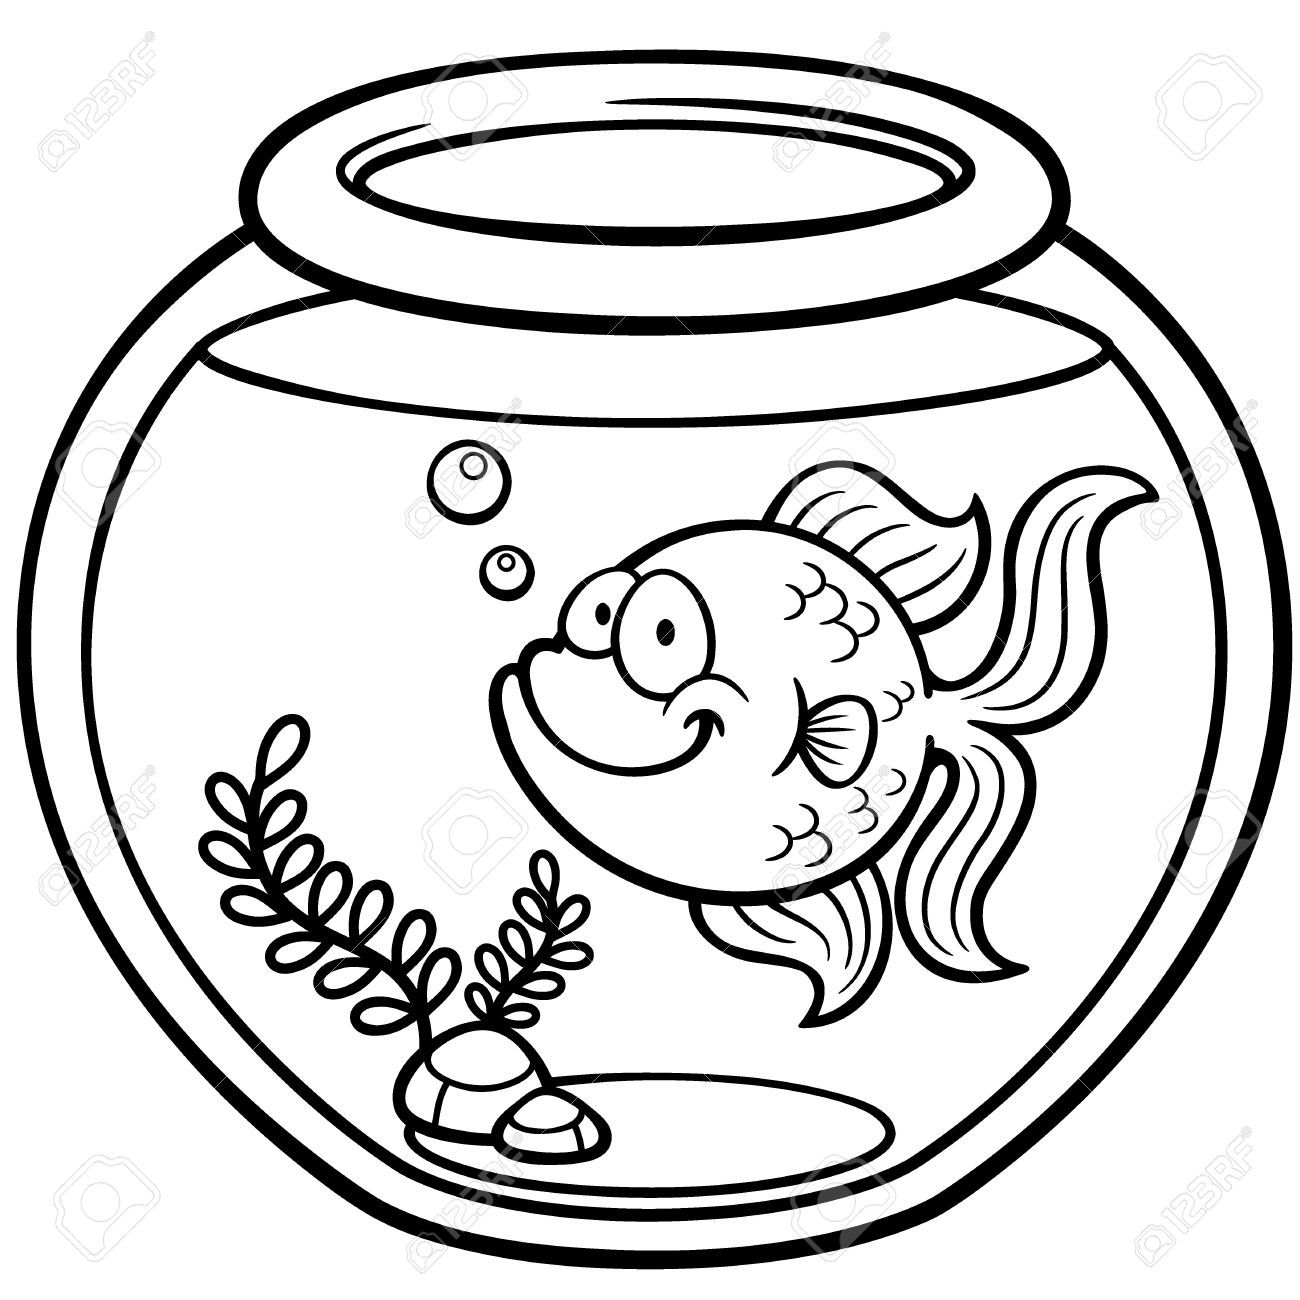 Goldfish Clipart Black And White Free Download Best Goldfish